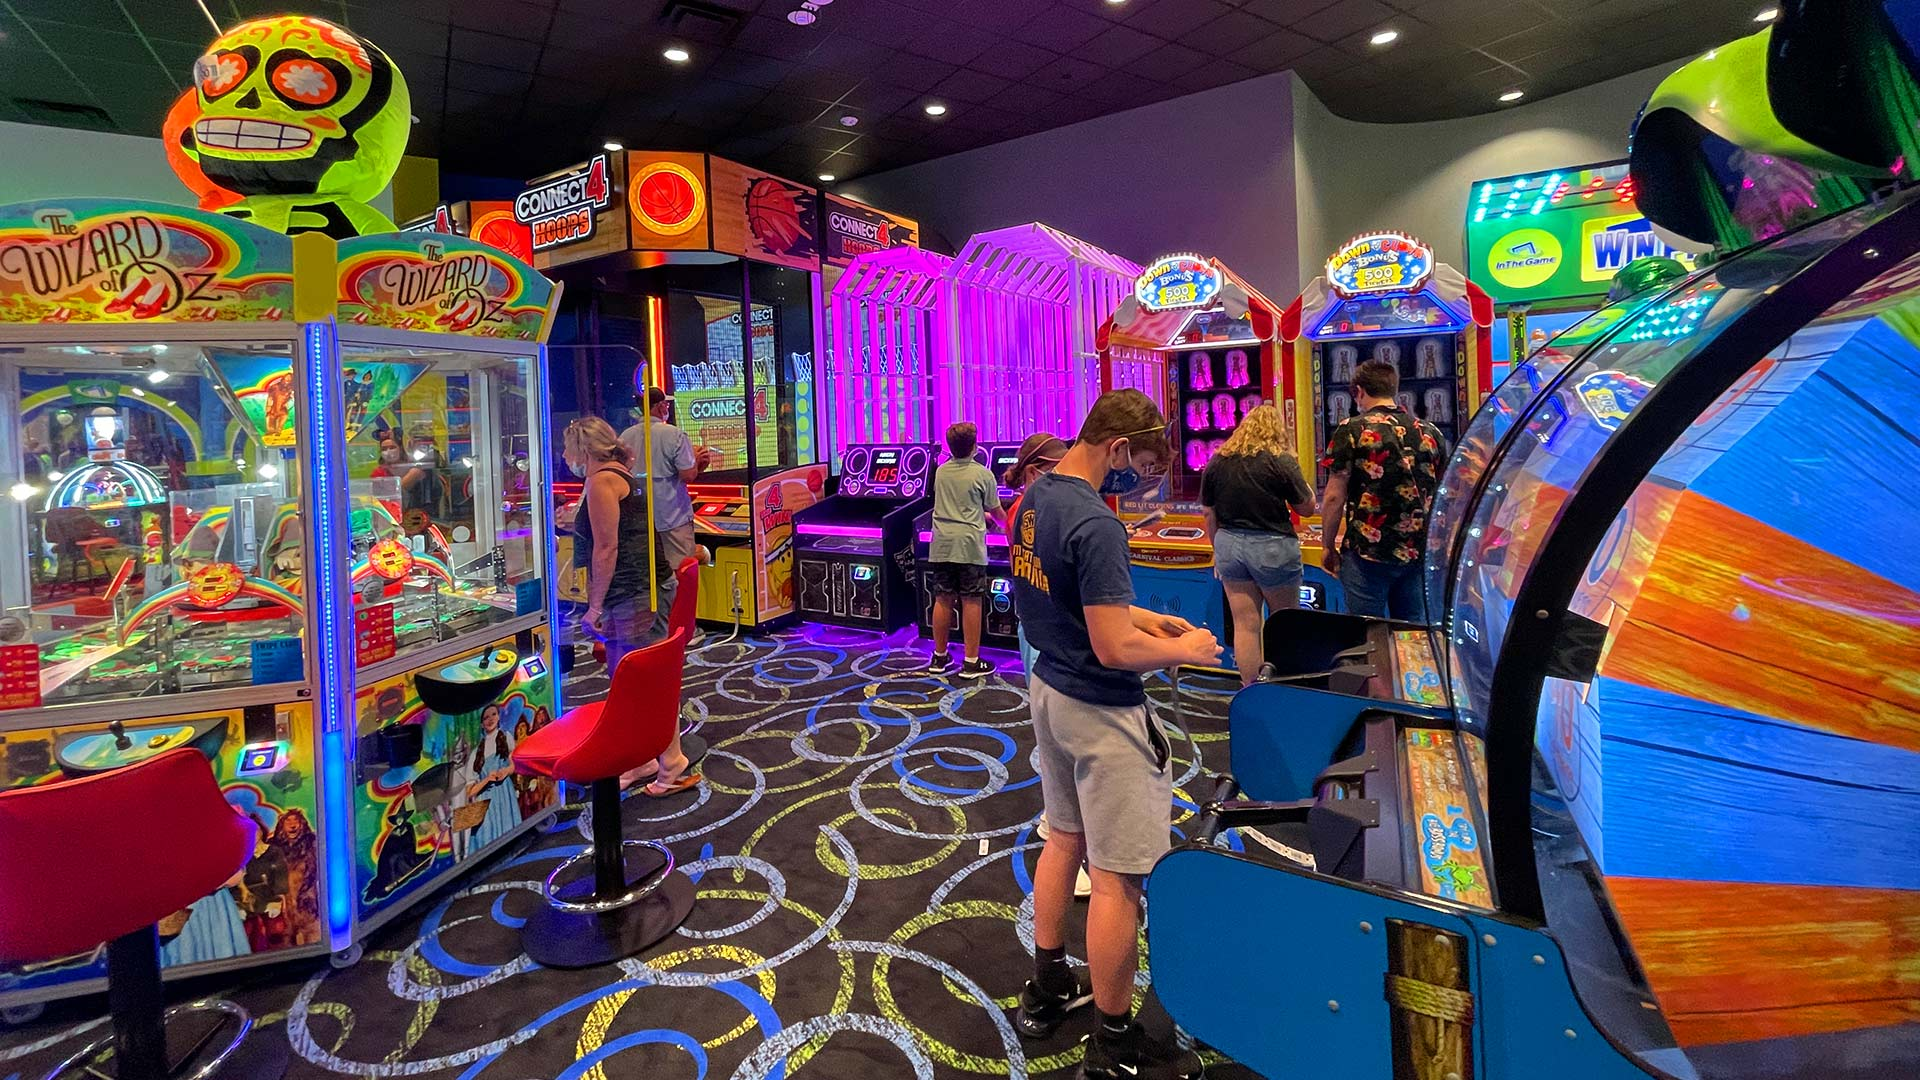 In The Game ICON Park in Orlando has amazing Arcade Games